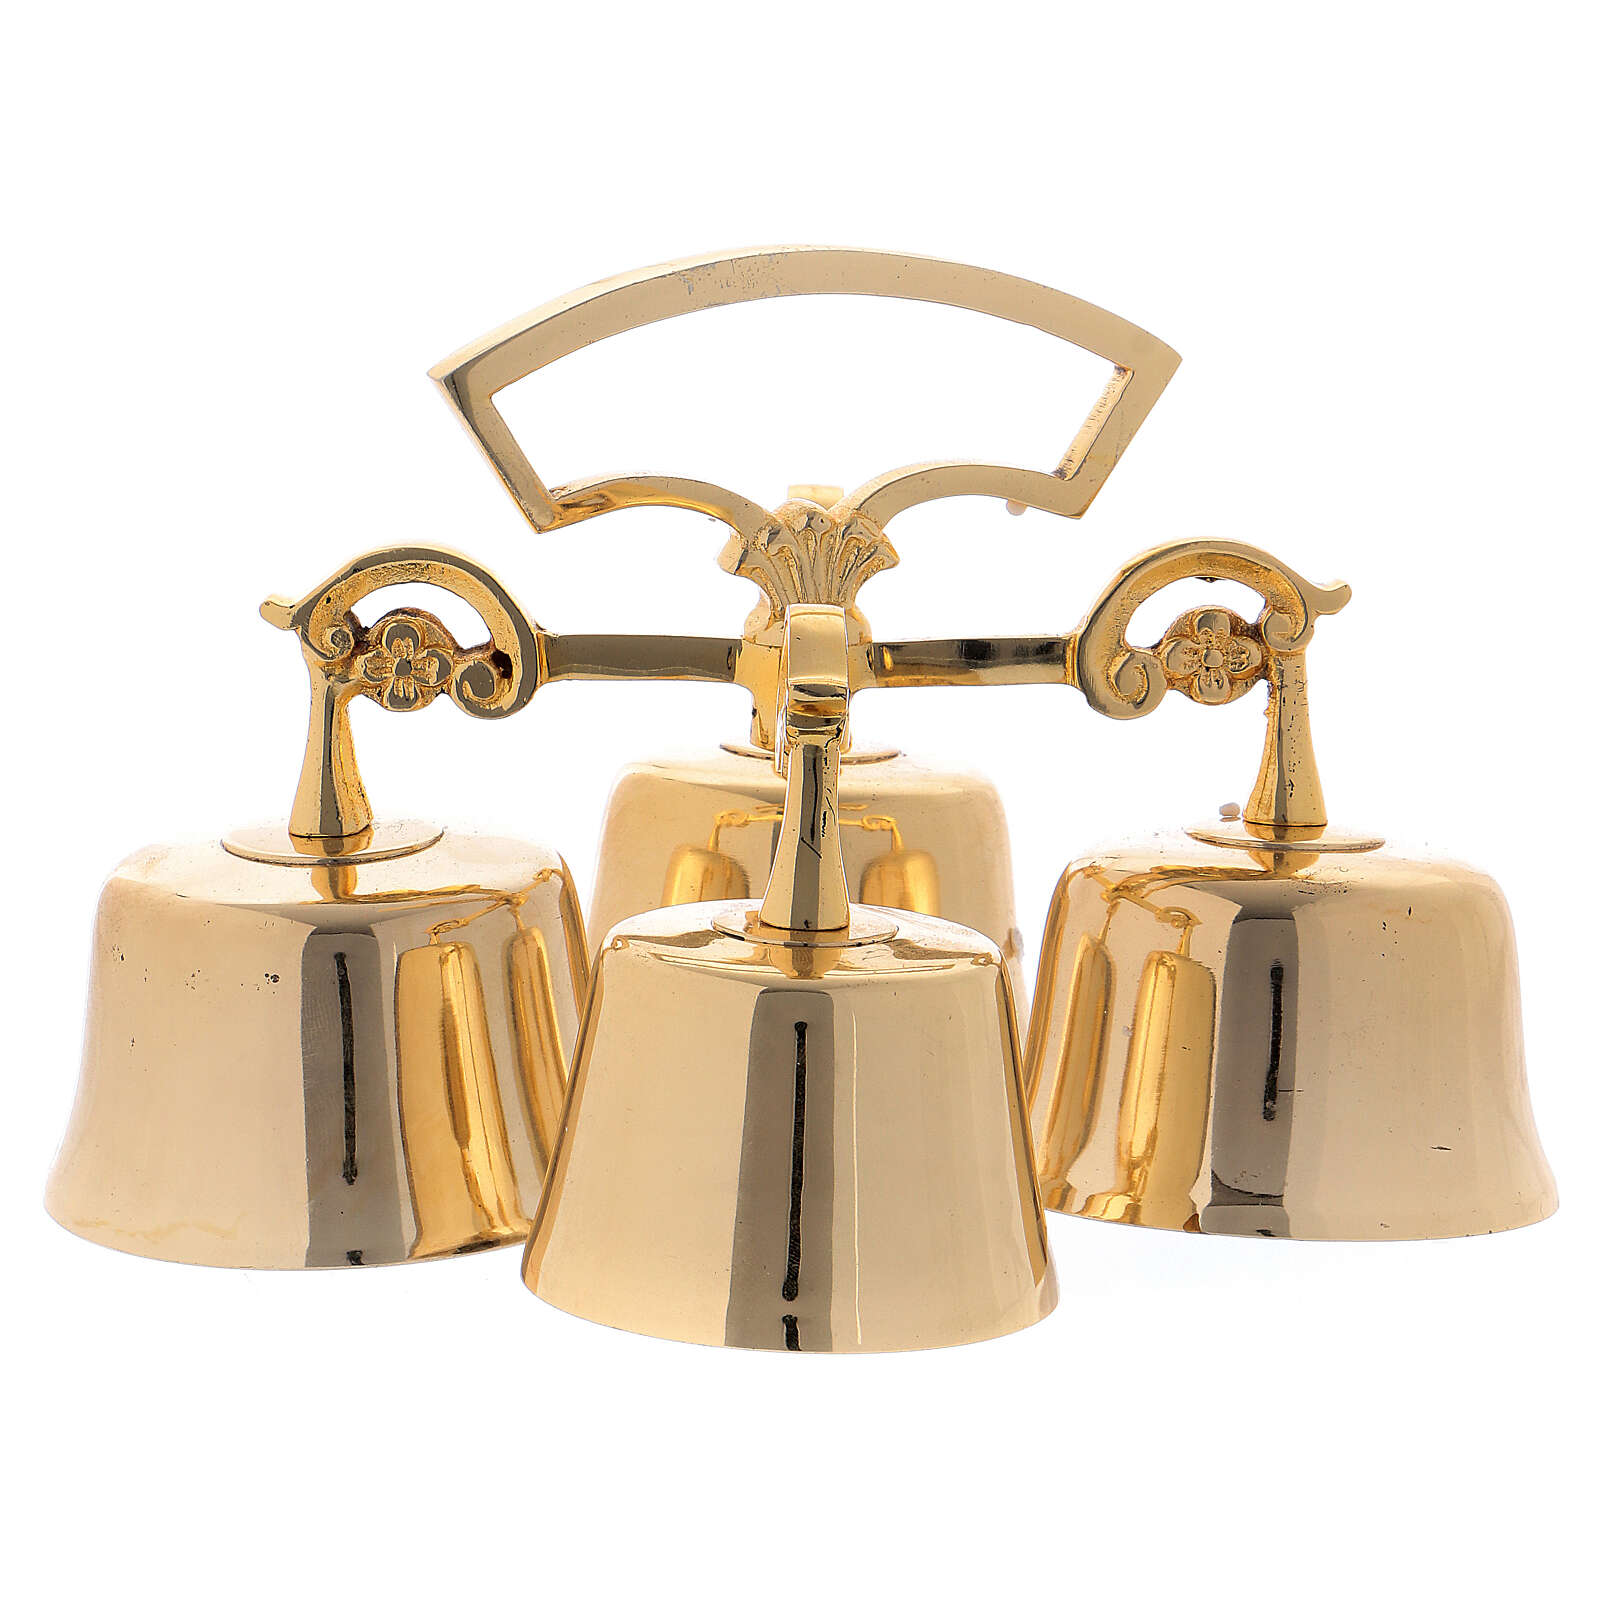 Altar bells 4 tones in gold plated brass 3